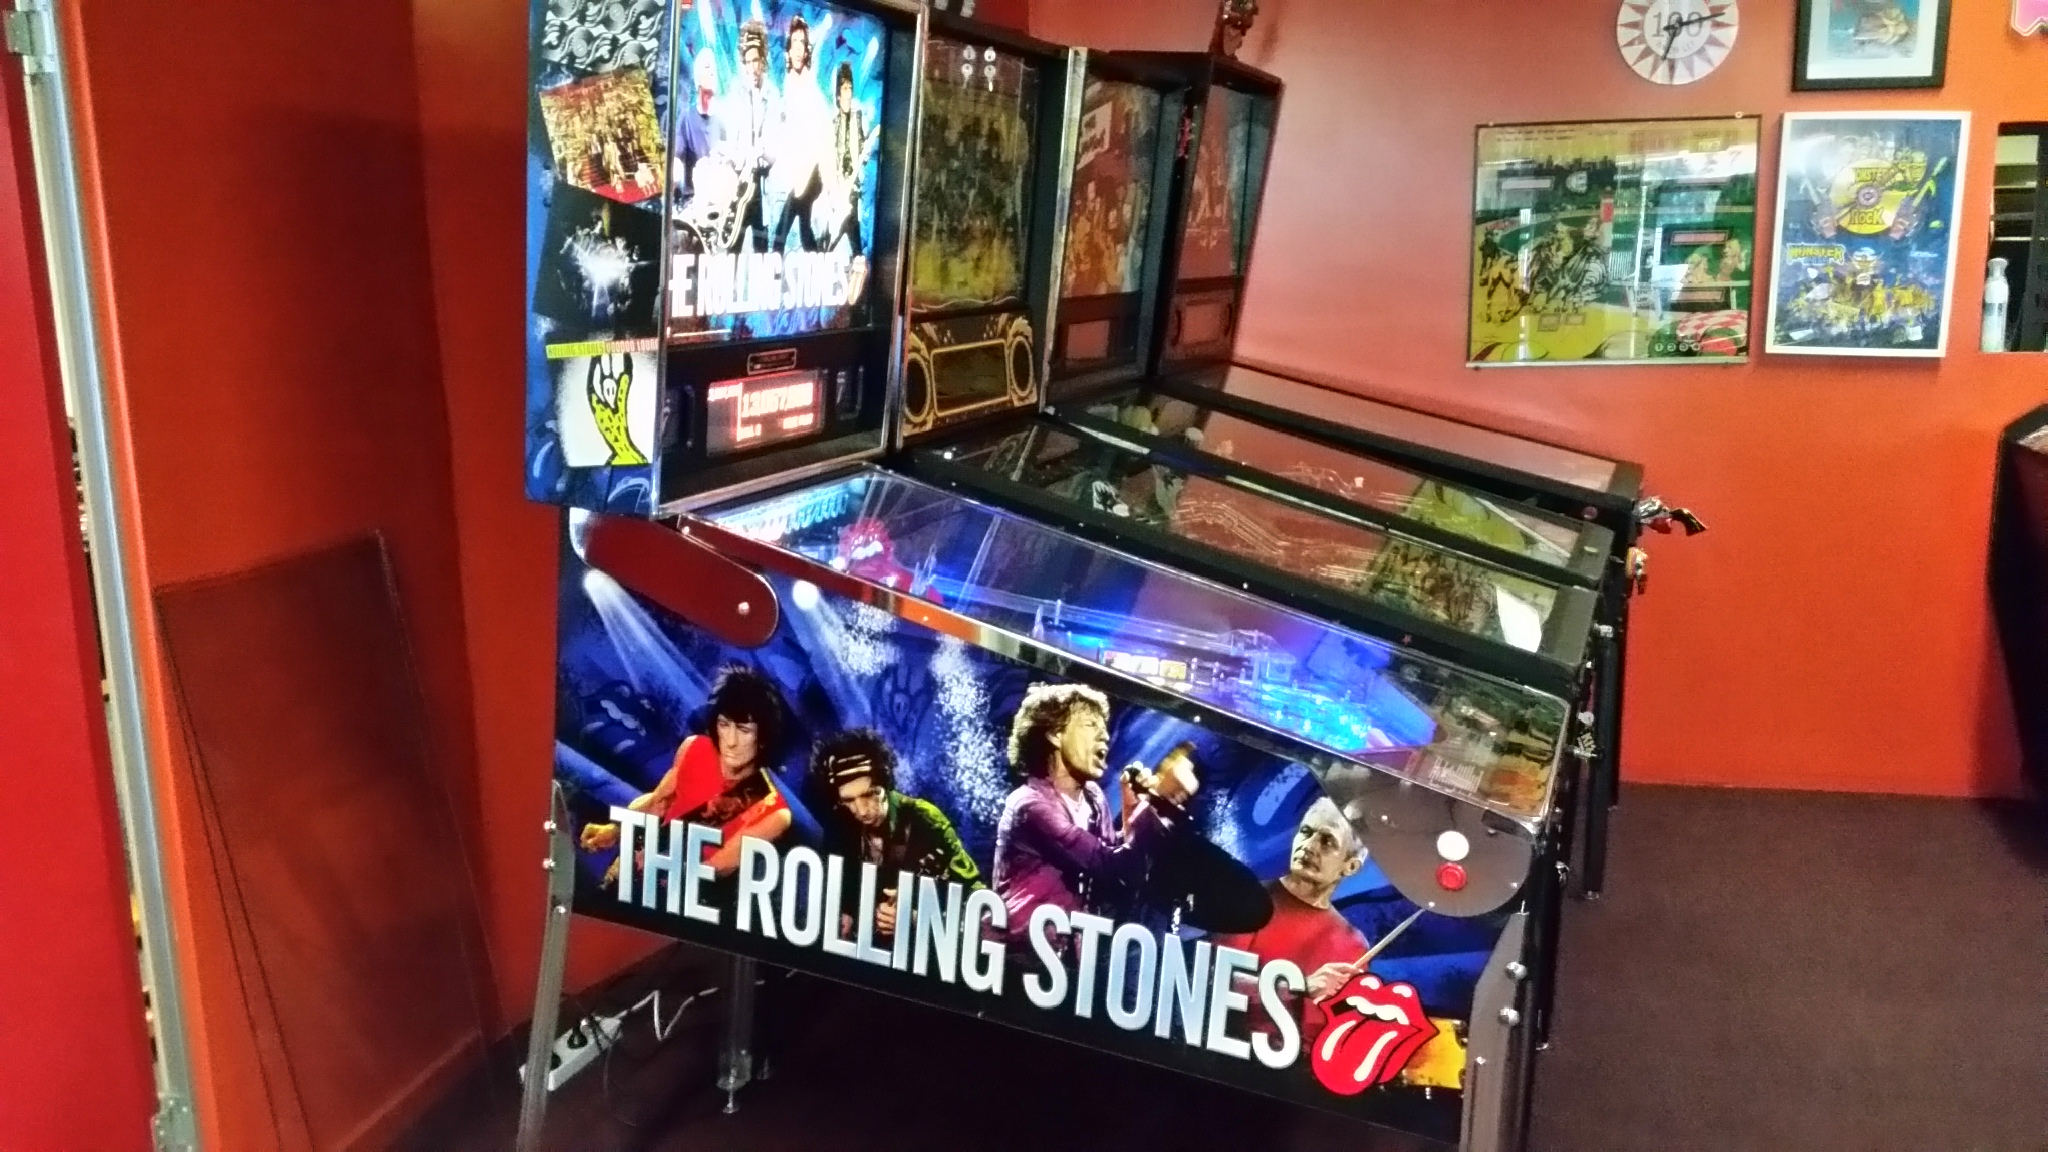 Rolling Stones Limited Edition Pinball Arcade Classics